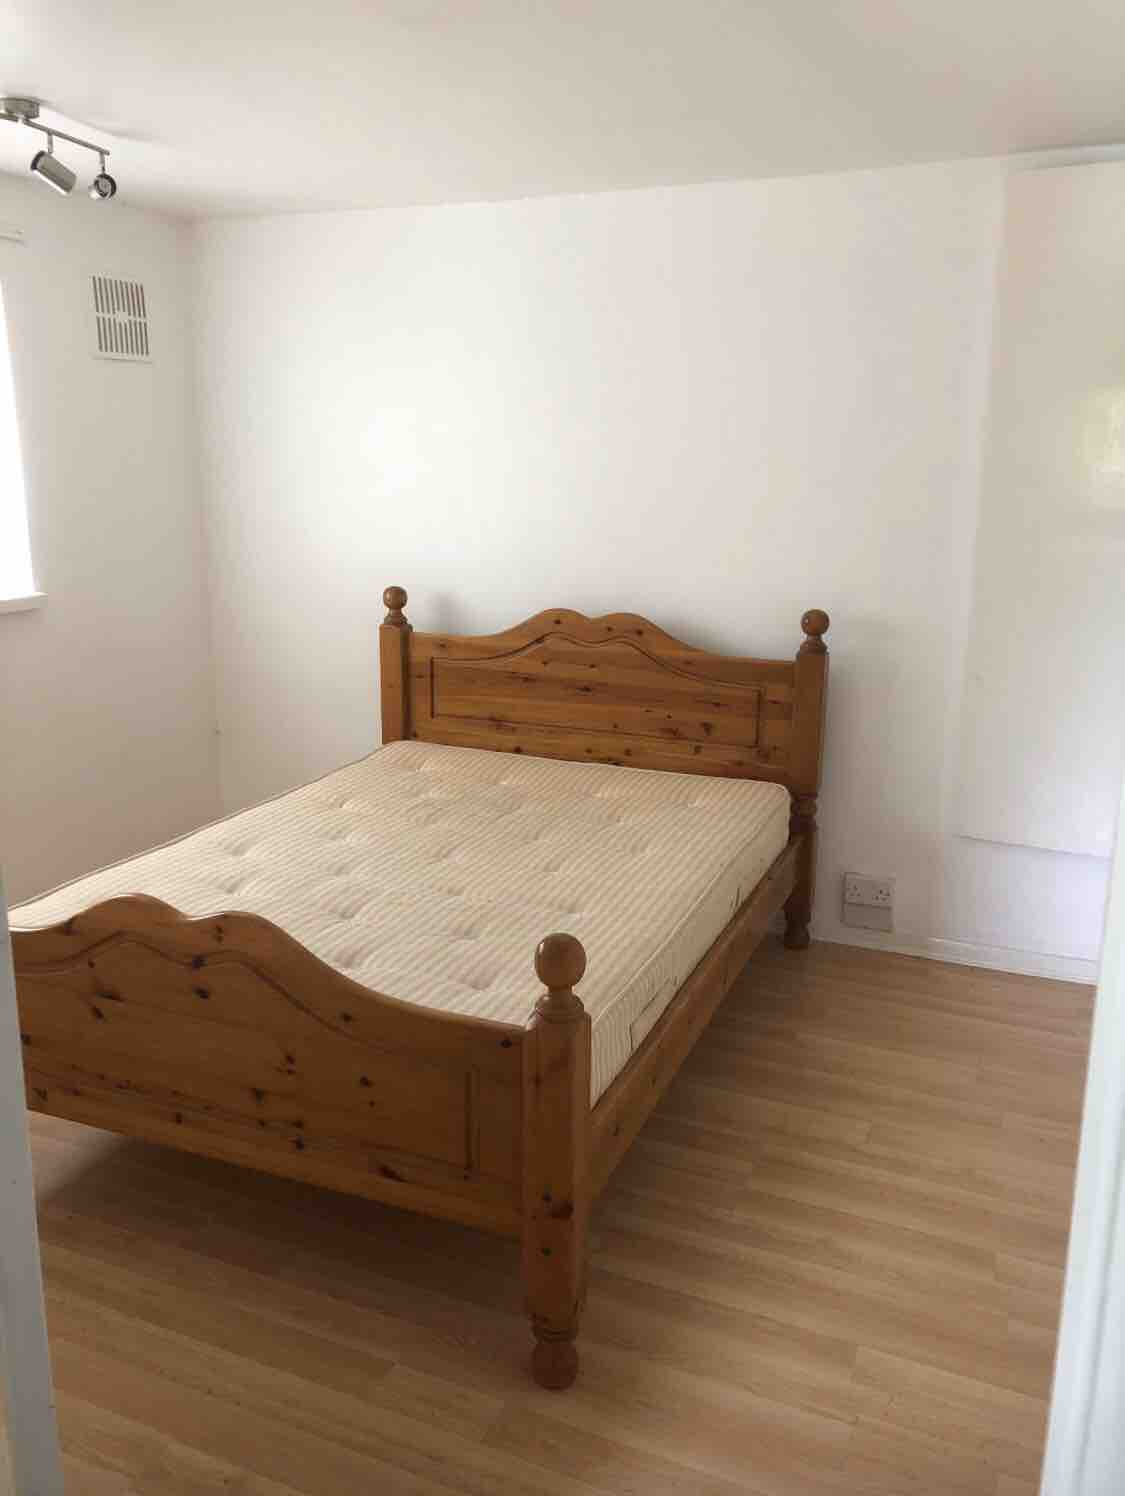 1 room in Havant, Portsmouth, PO9 3DE RoomsLocal image